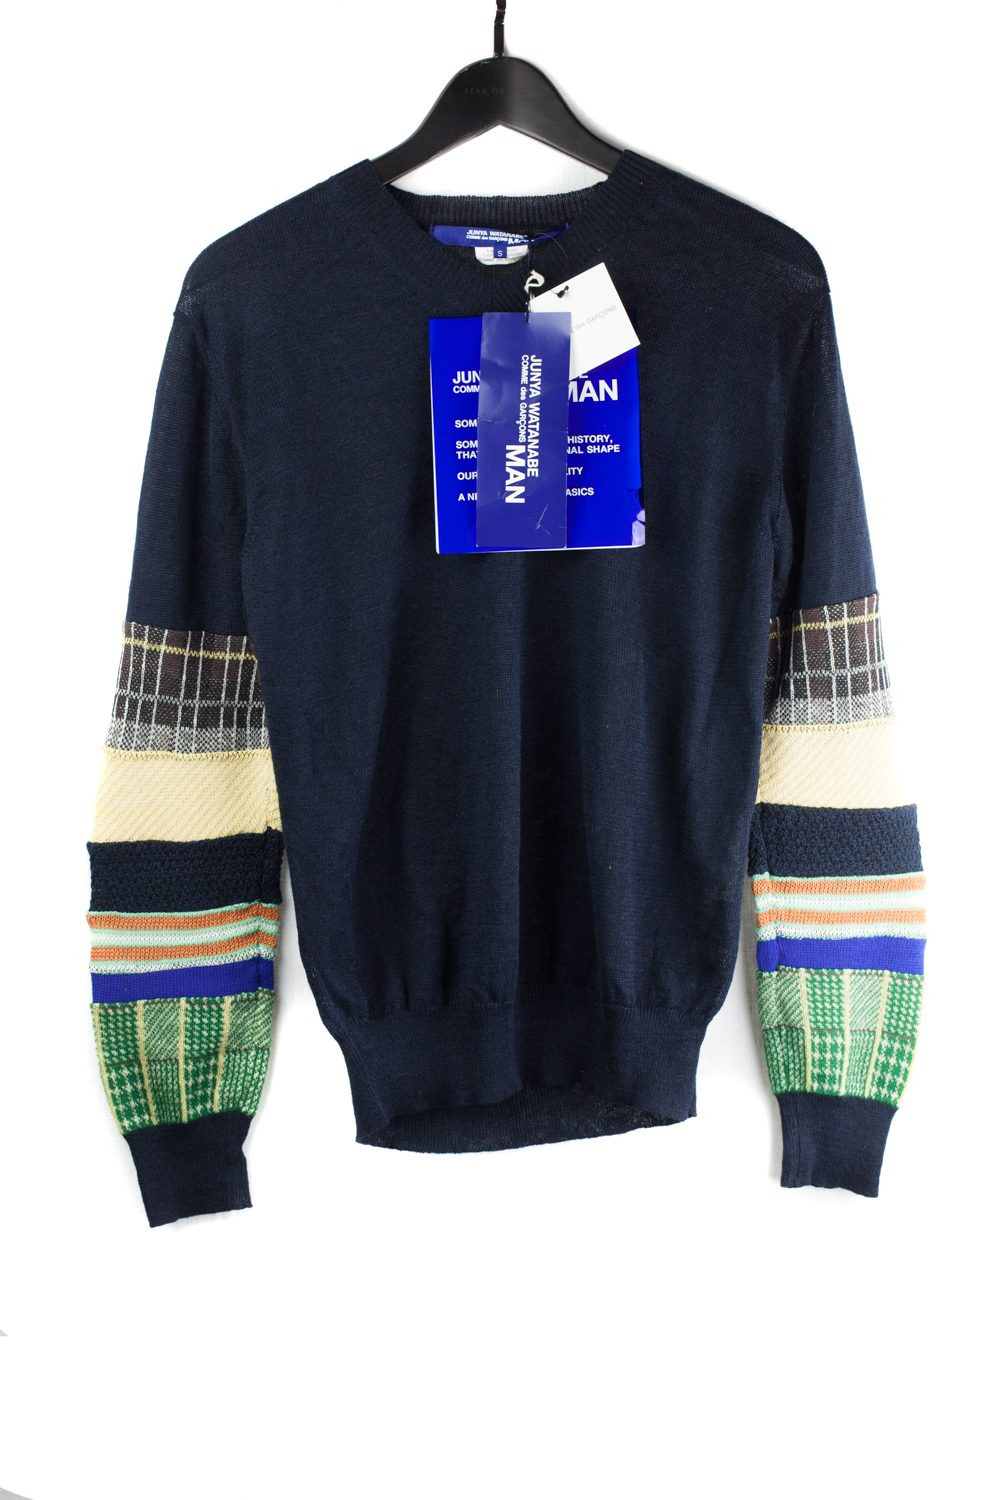 NWT Patchwork Multifabric Sleeved Sweater